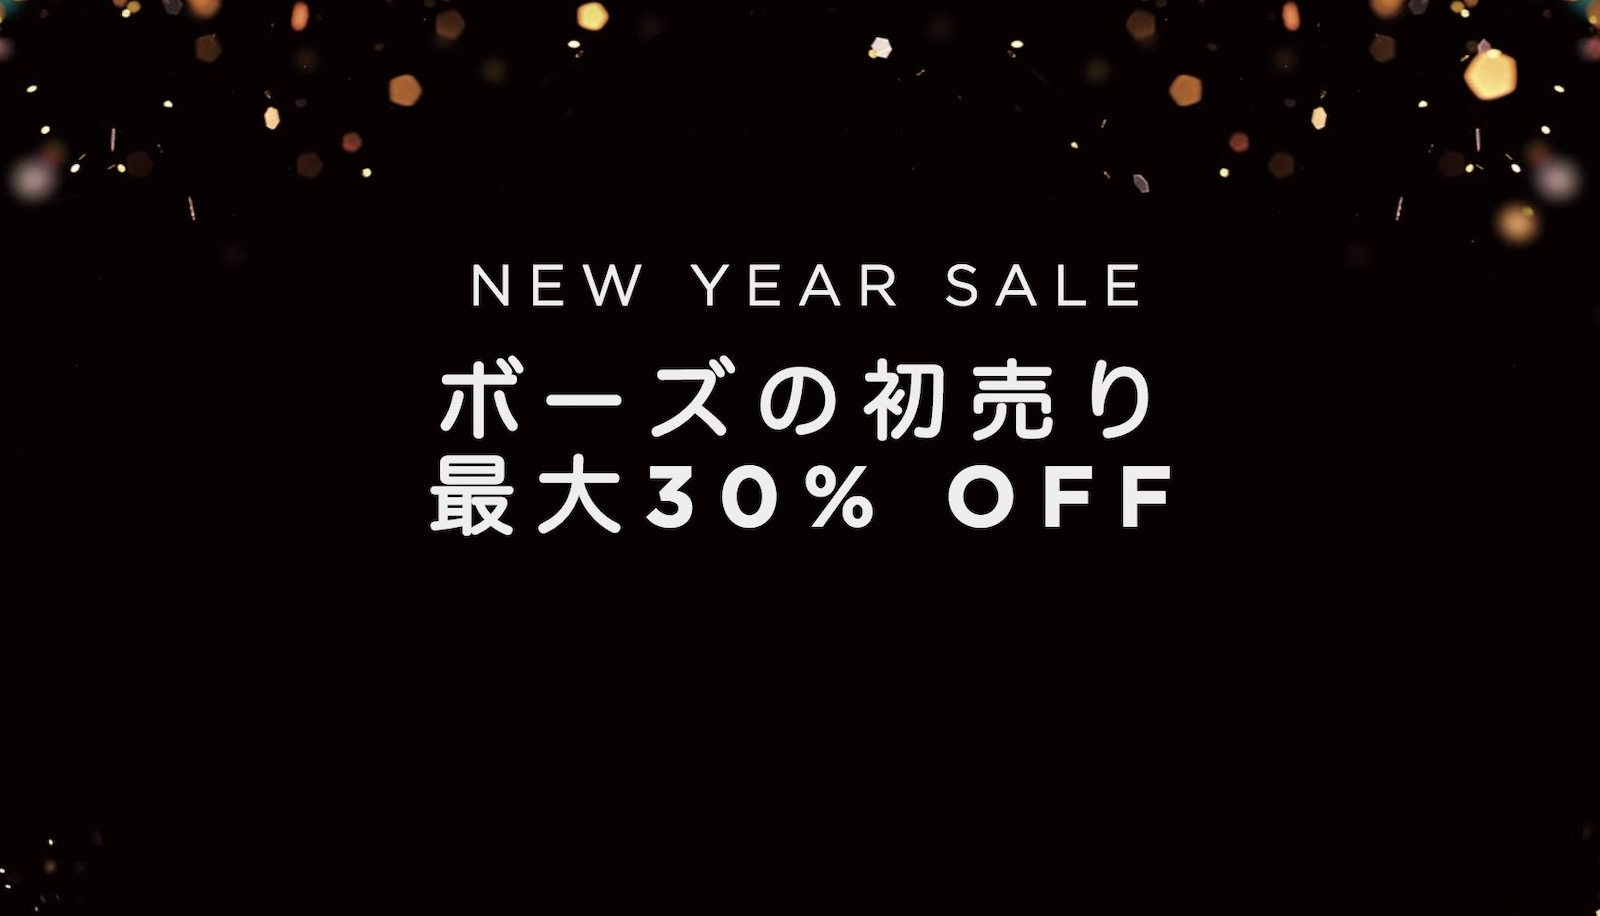 Bose New Years Sale